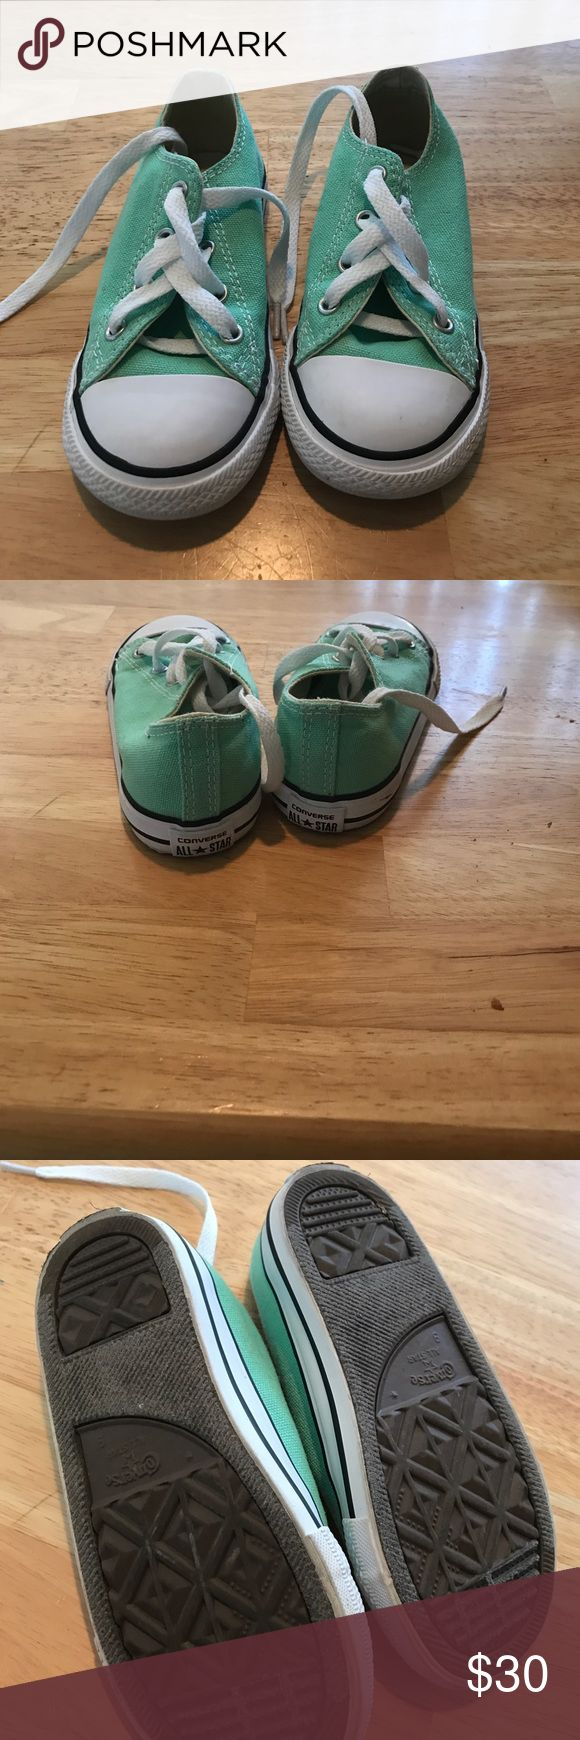 Turquoise converse Toddlers turquoise converse worn 1 time Converse Shoes Sneakers